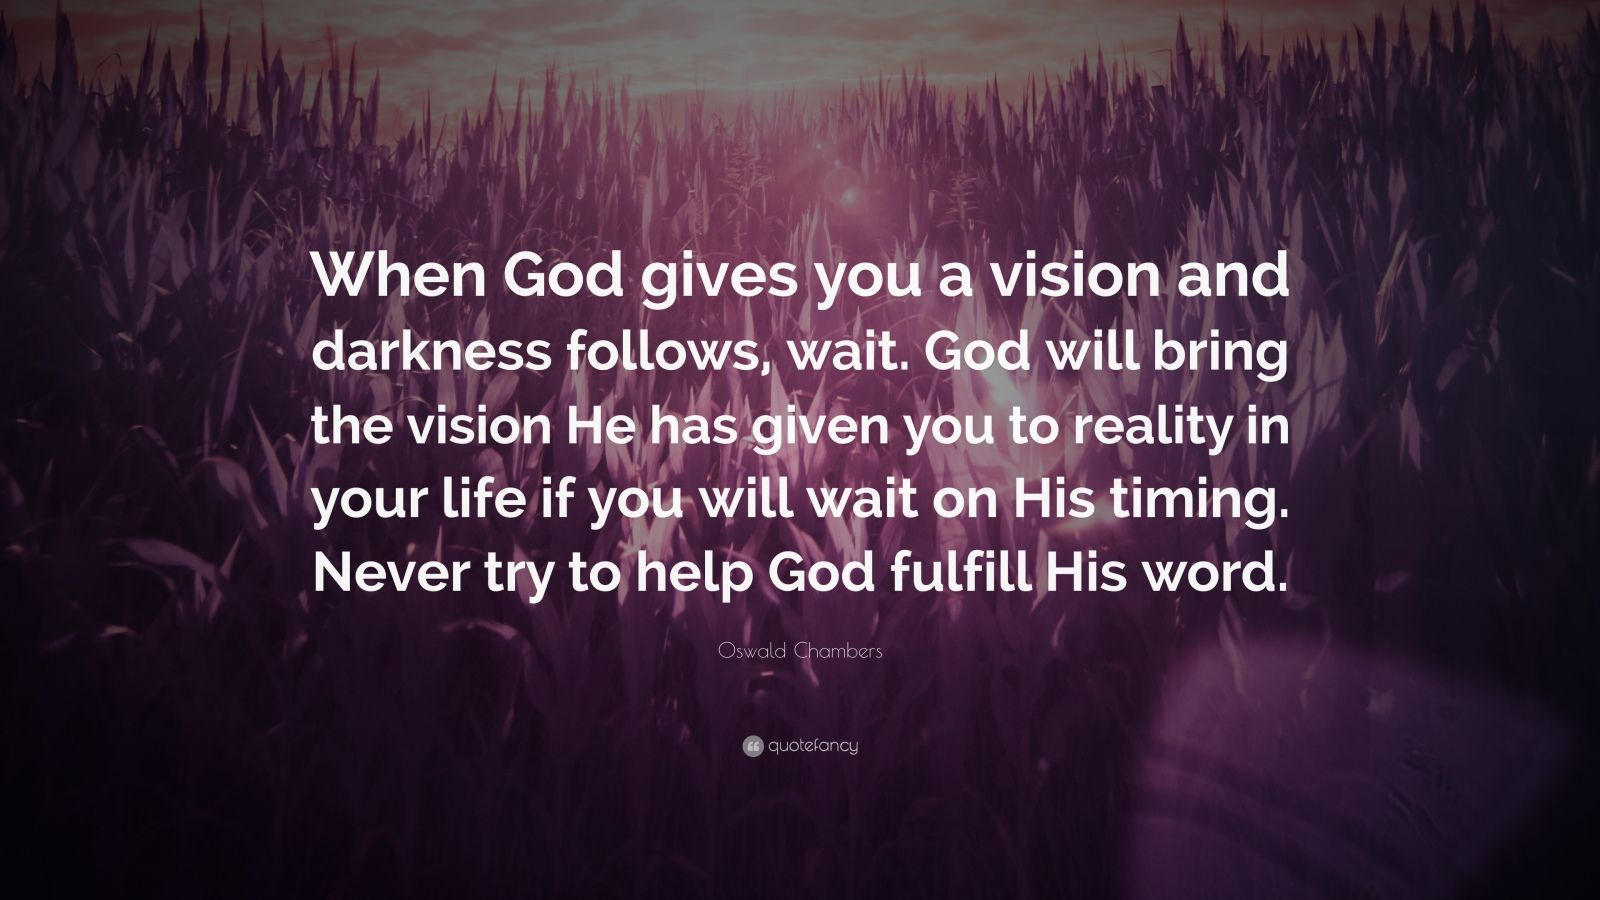 """Oswald Chambers Quote: """"When God gives you a vision and darkness follows, wait. God will bring the vision He has given you to reality in your life if you will wait on His timing. Never try to help God fulfill His word."""""""